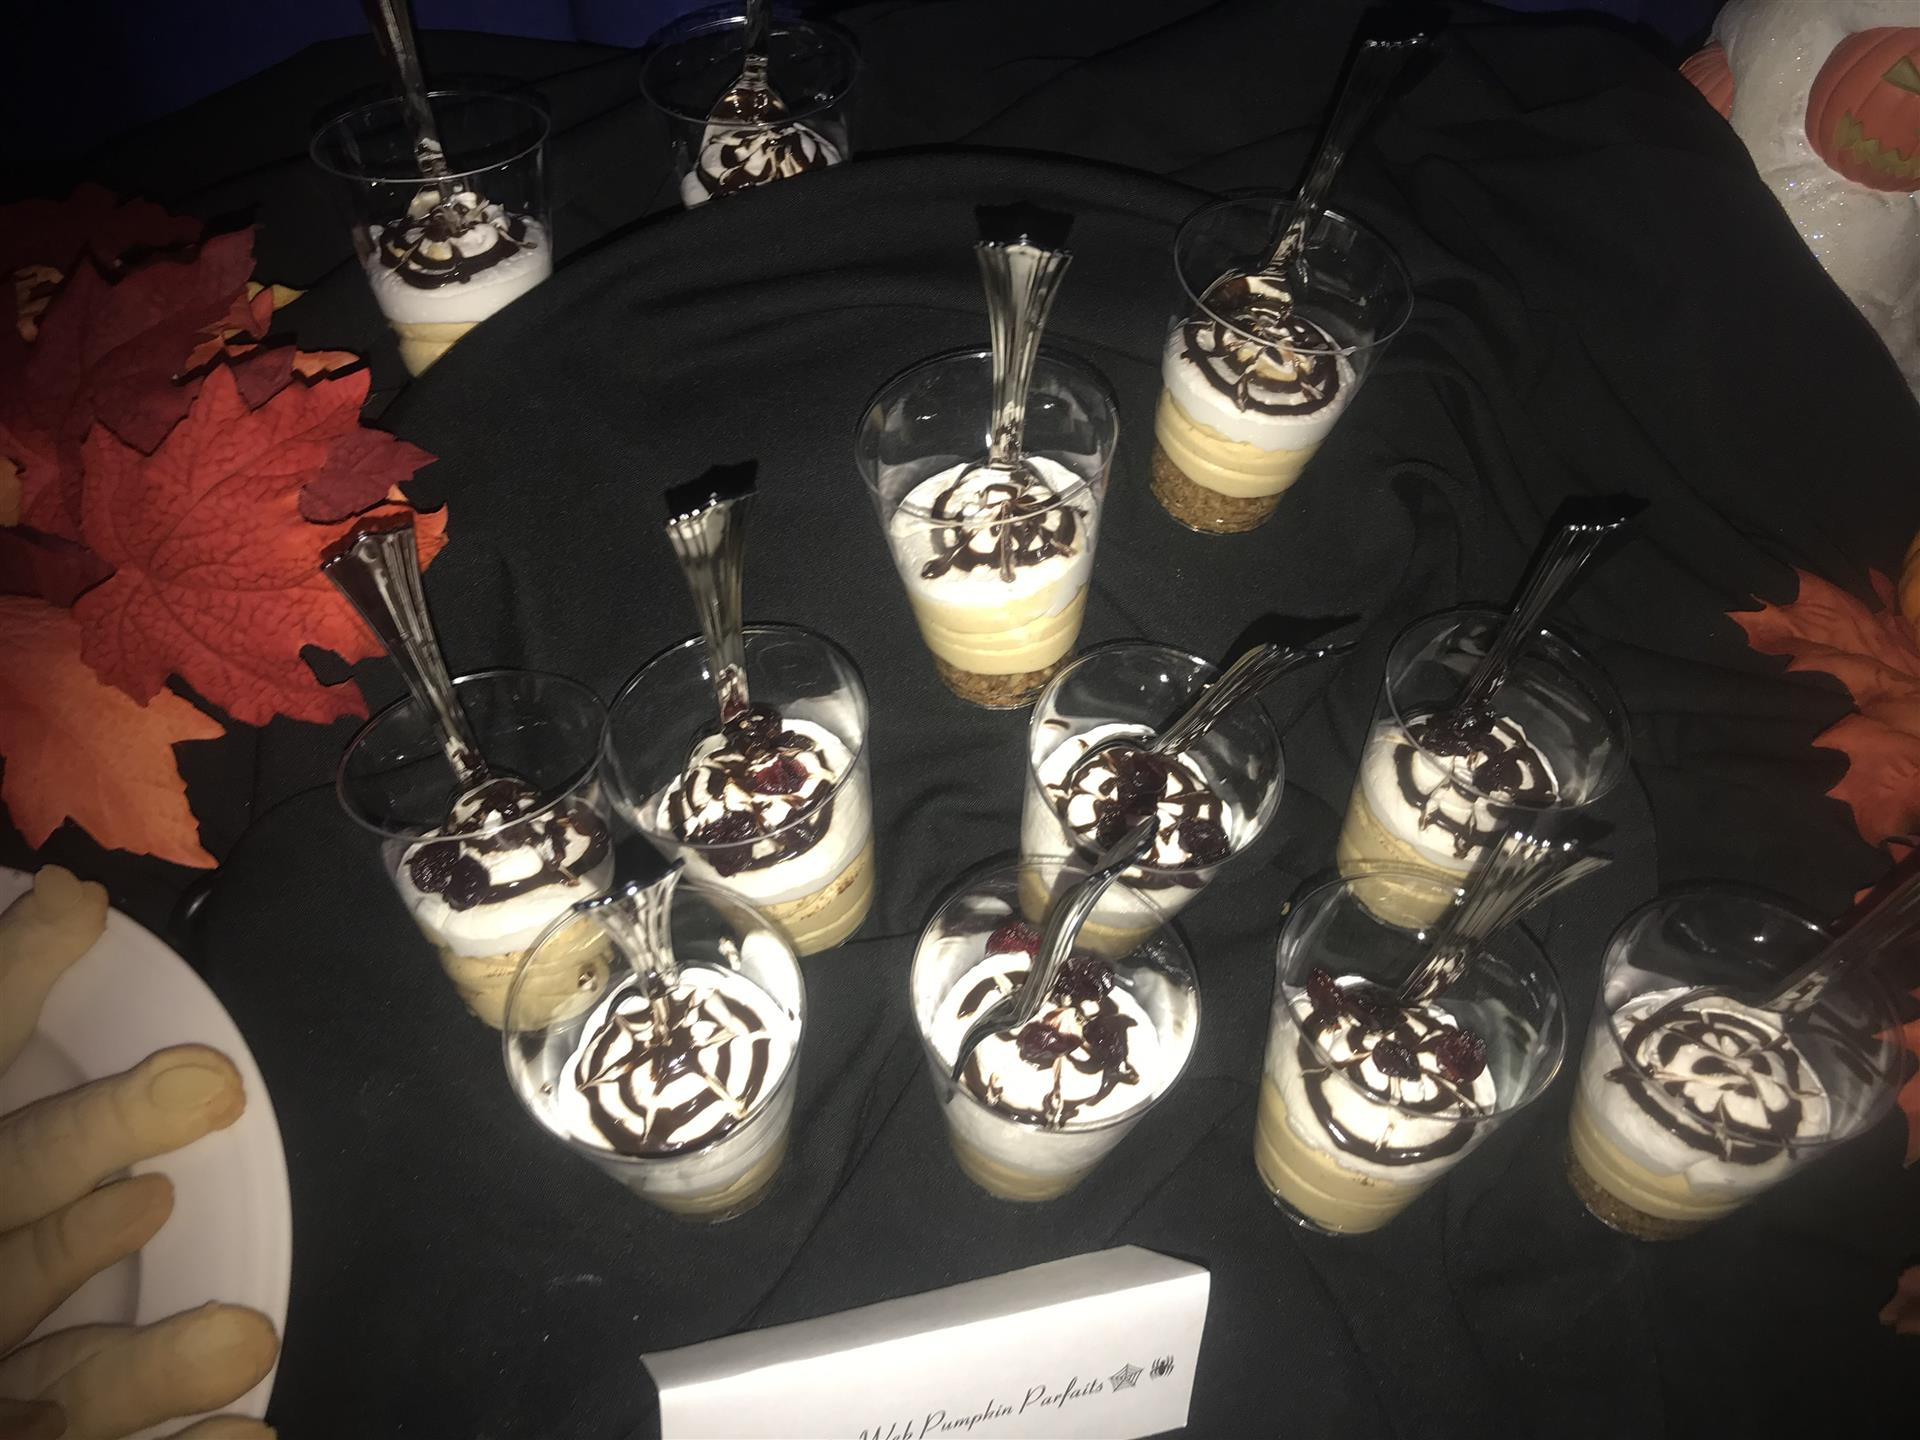 Halloween decorated parfaits with spider web designs on a black table cloth